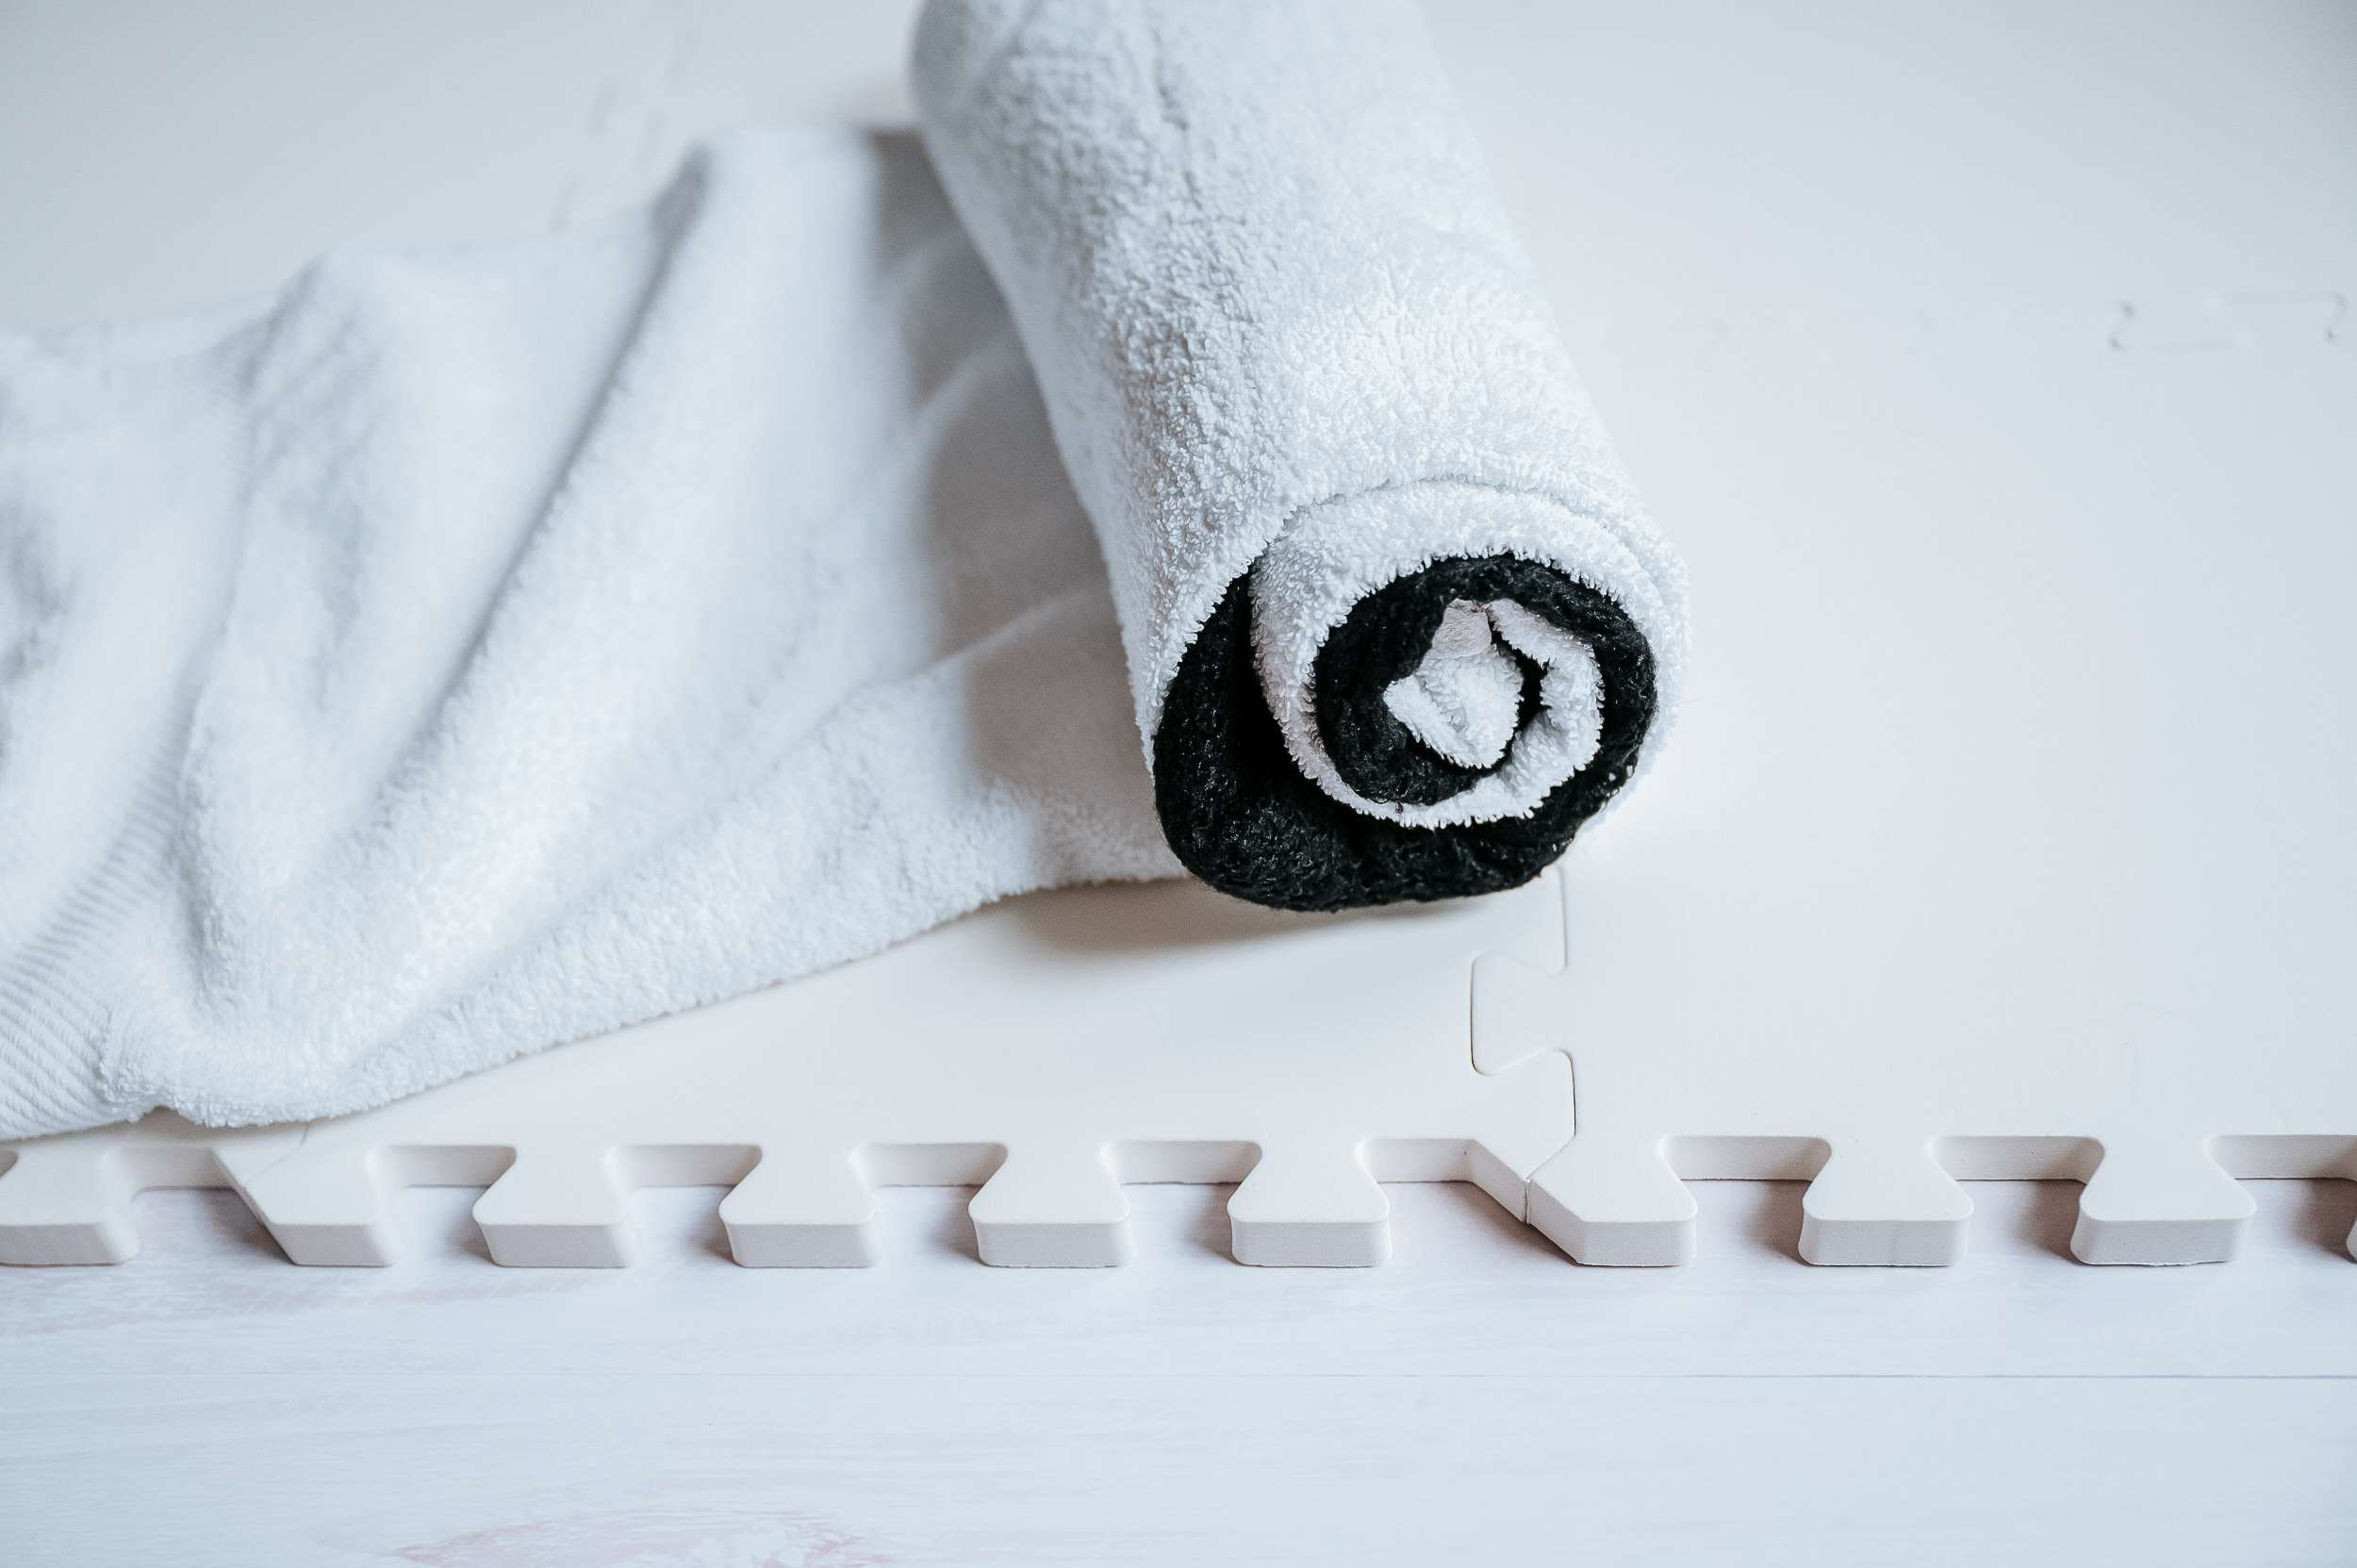 A sweater rolled up in a thick cotton towel on a board